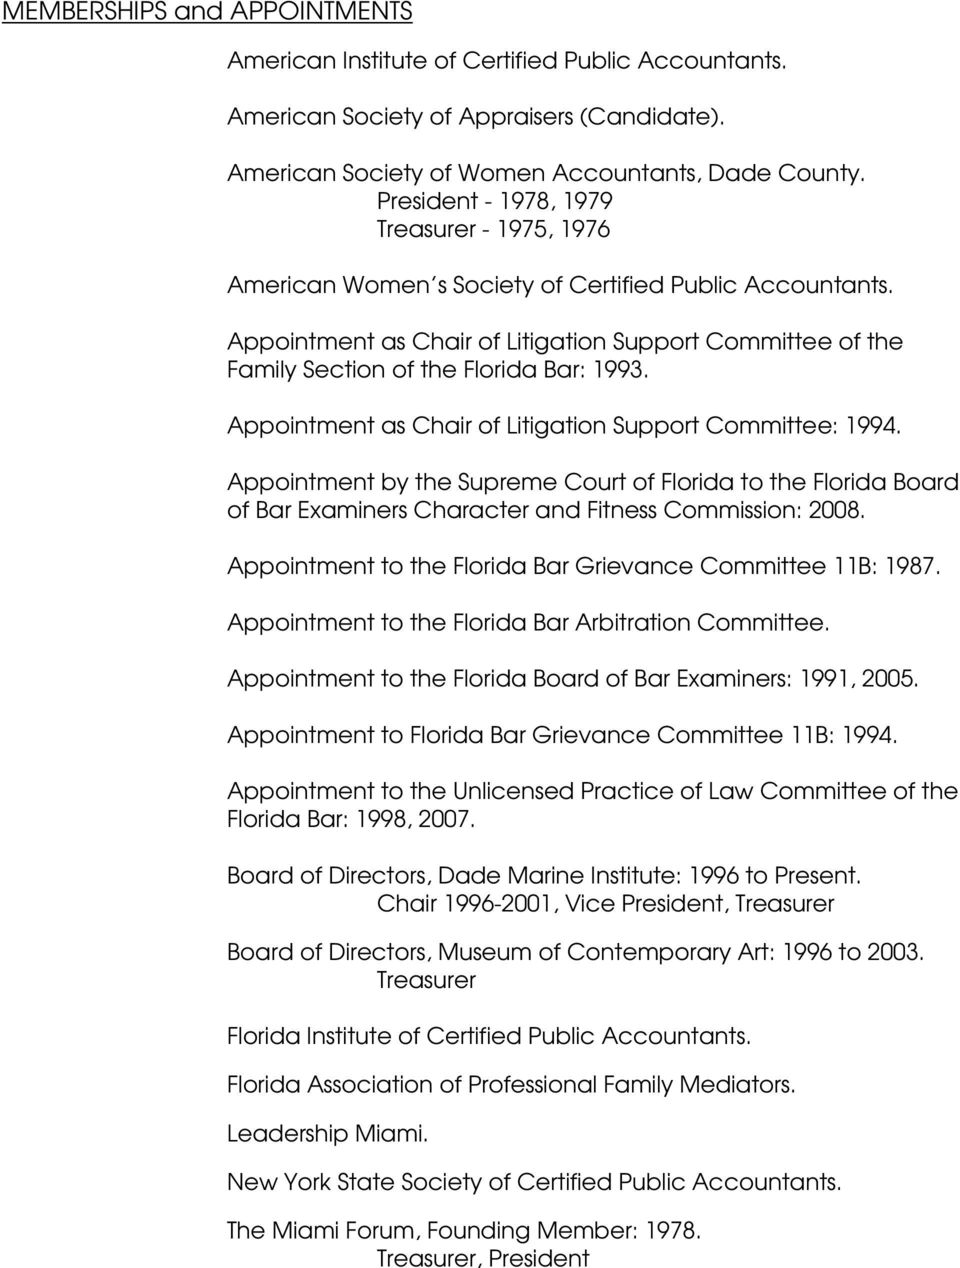 Appointment as Chair of Litigation Support Committee of the Family Section of the Florida Bar: 1993. Appointment as Chair of Litigation Support Committee: 1994.